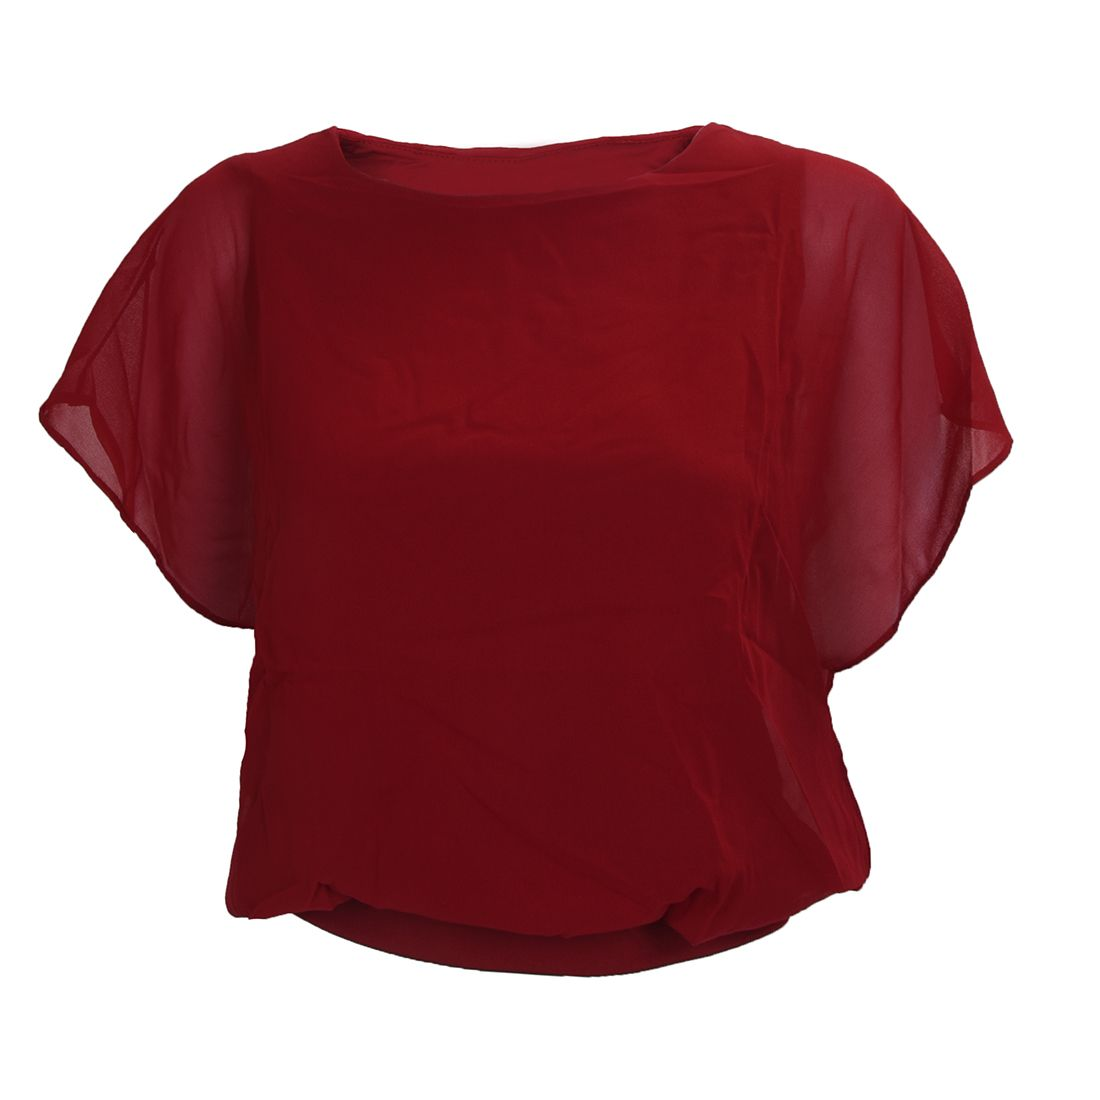 Click To Buy Hot Womens Career Candy Color Chiffon Tops Fitted Puff Sleeve Shirt Clubwear Blouse Red Wine L Affiliate Red Blouses Shirt Sleeves Shirt Blouses